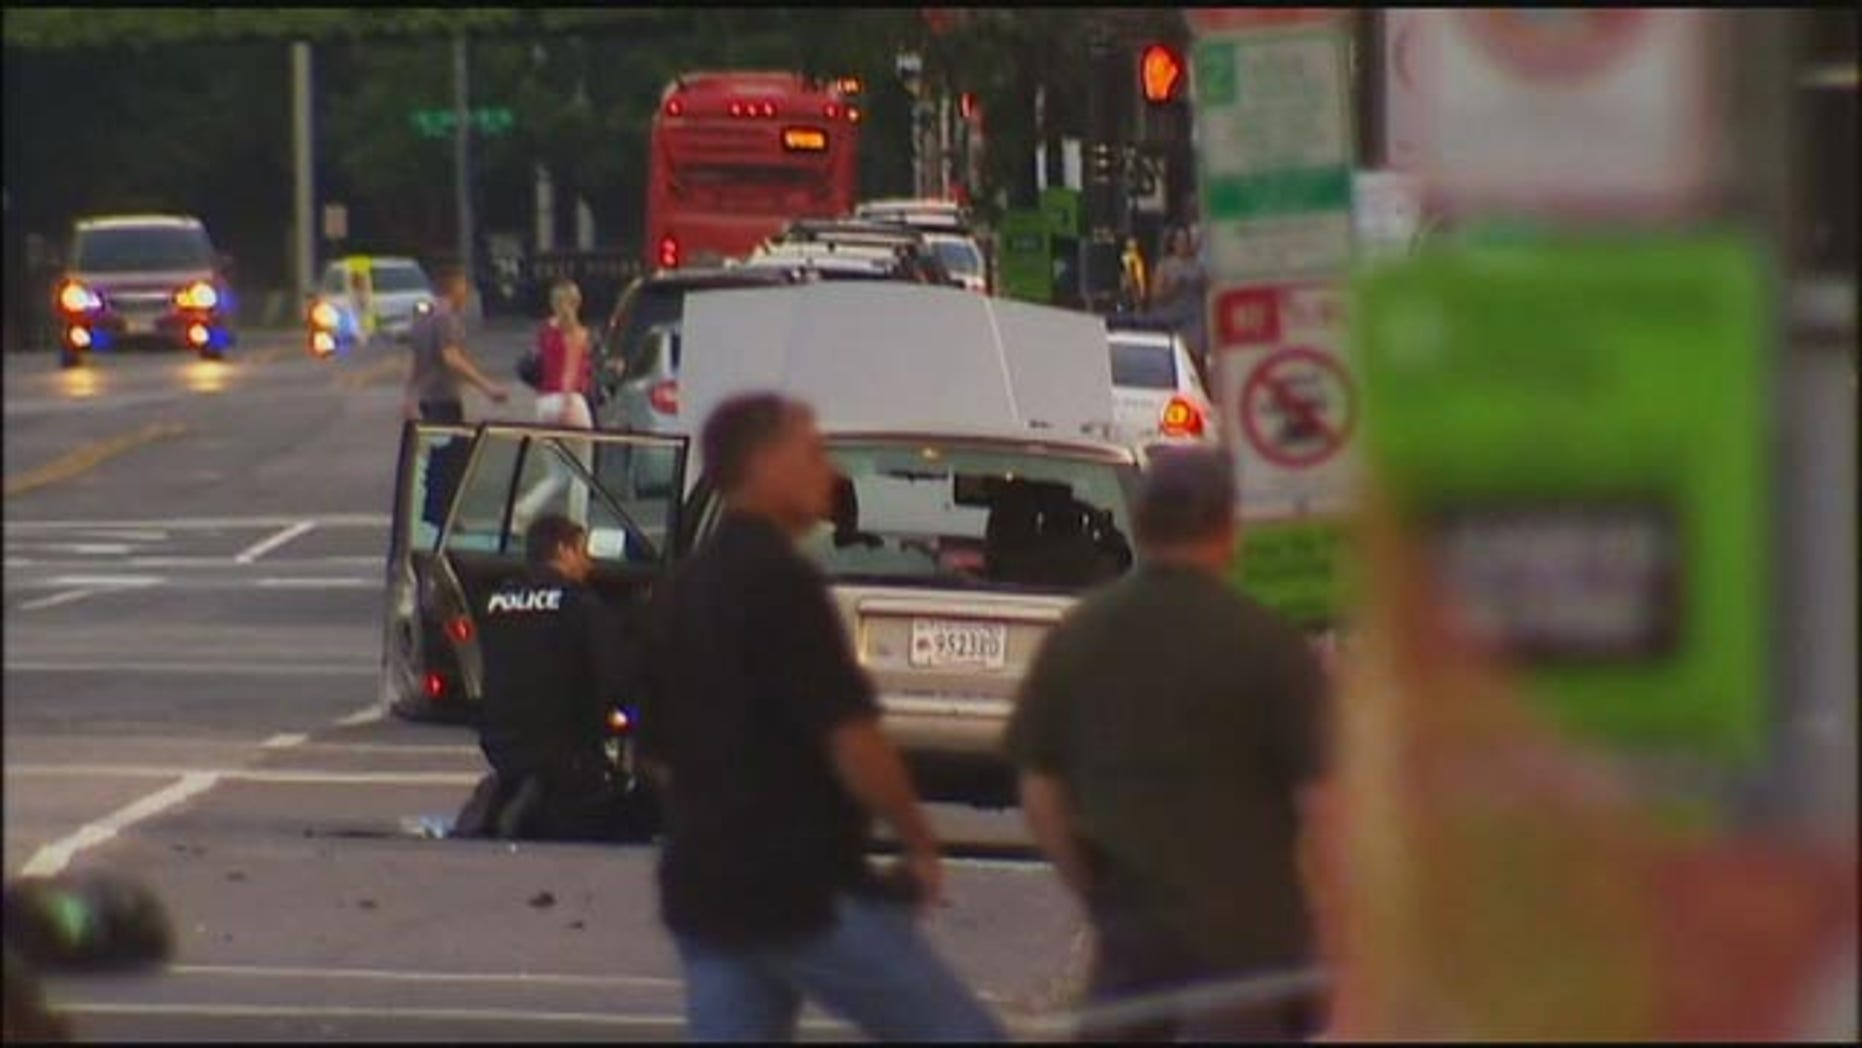 May 24, 2015: Police check a suspicious vehicle near the West Front of the U.S. Capitol Building in Washington D.C. (MyFoxDC.com)